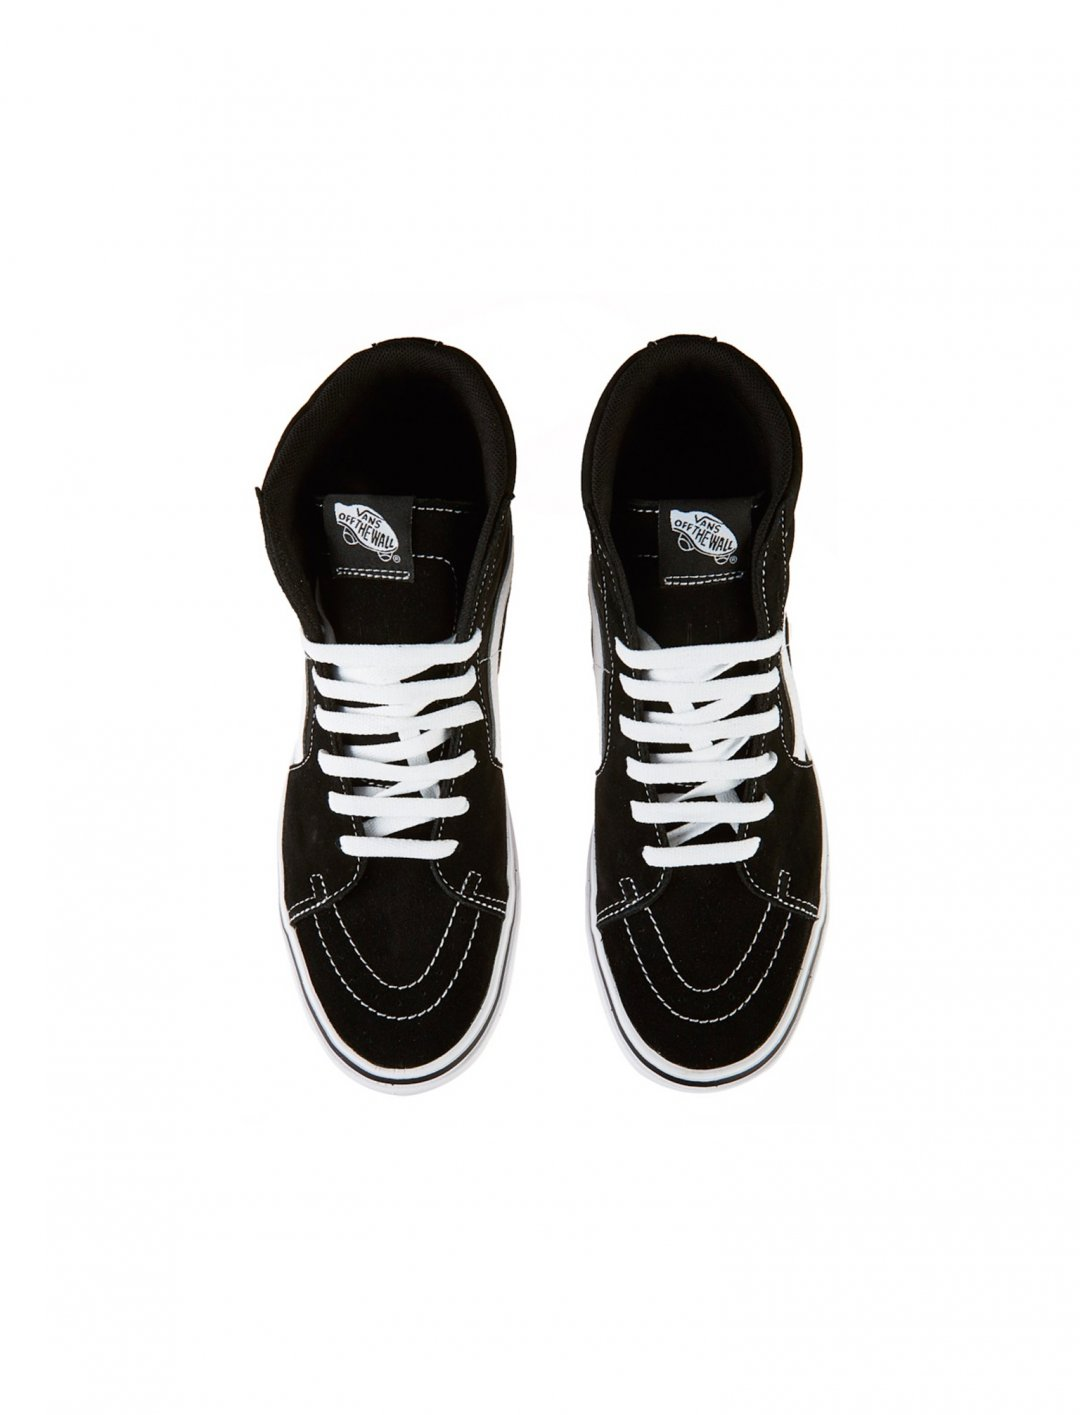 "Comfycush SK8-Hi Shoes {""id"":12,""product_section_id"":1,""name"":""Shoes"",""order"":12} Vans"